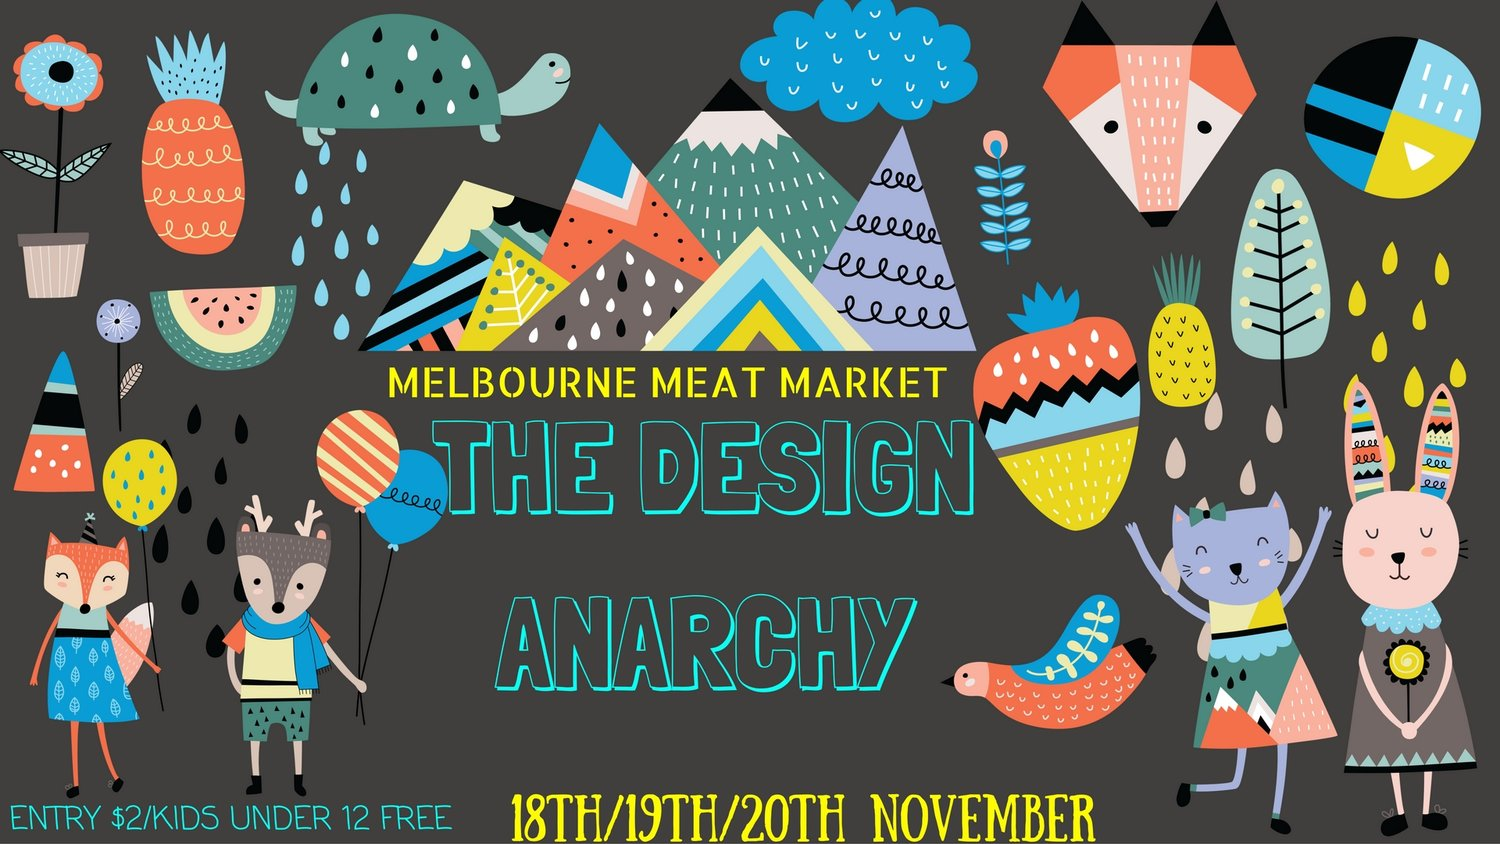 We are at The Design Anarchy – get your Christmas gift inspiration